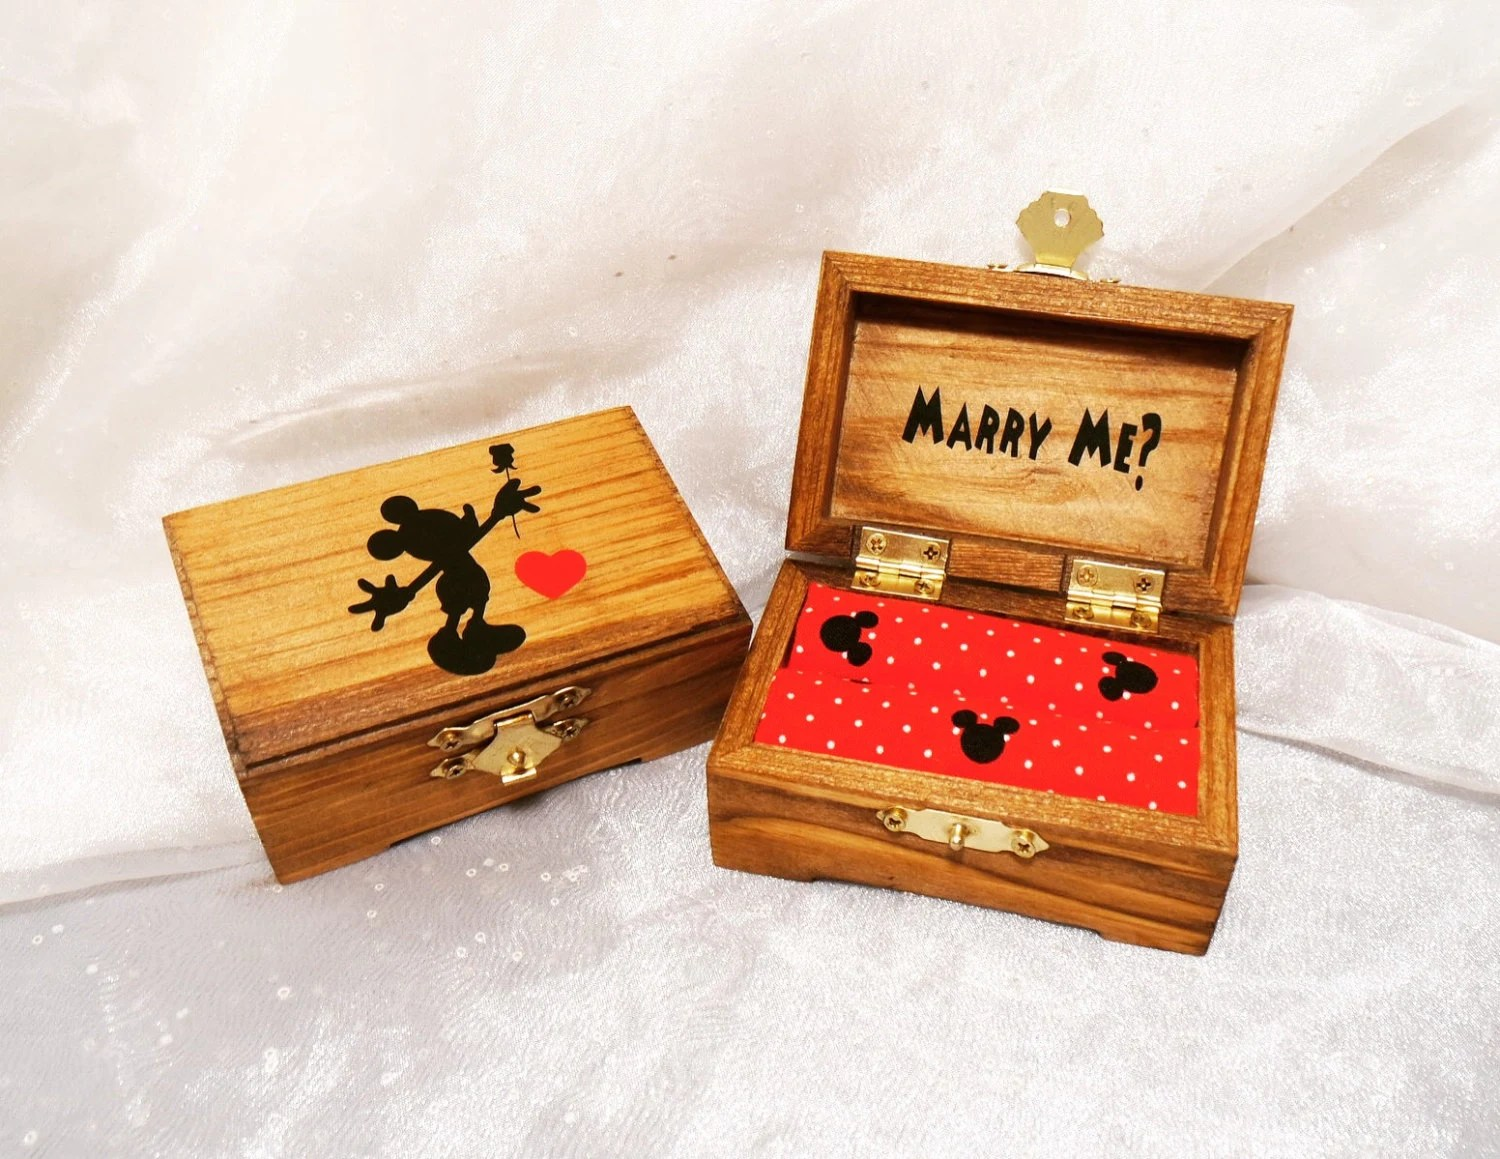 disney ring pillow disney wedding bands Mickey Mouse Marry Me Ring Bearer Ring Box Ring Pillow Alternative Disney Wedding Ring Box Will You Marry Me Ring Box Disney